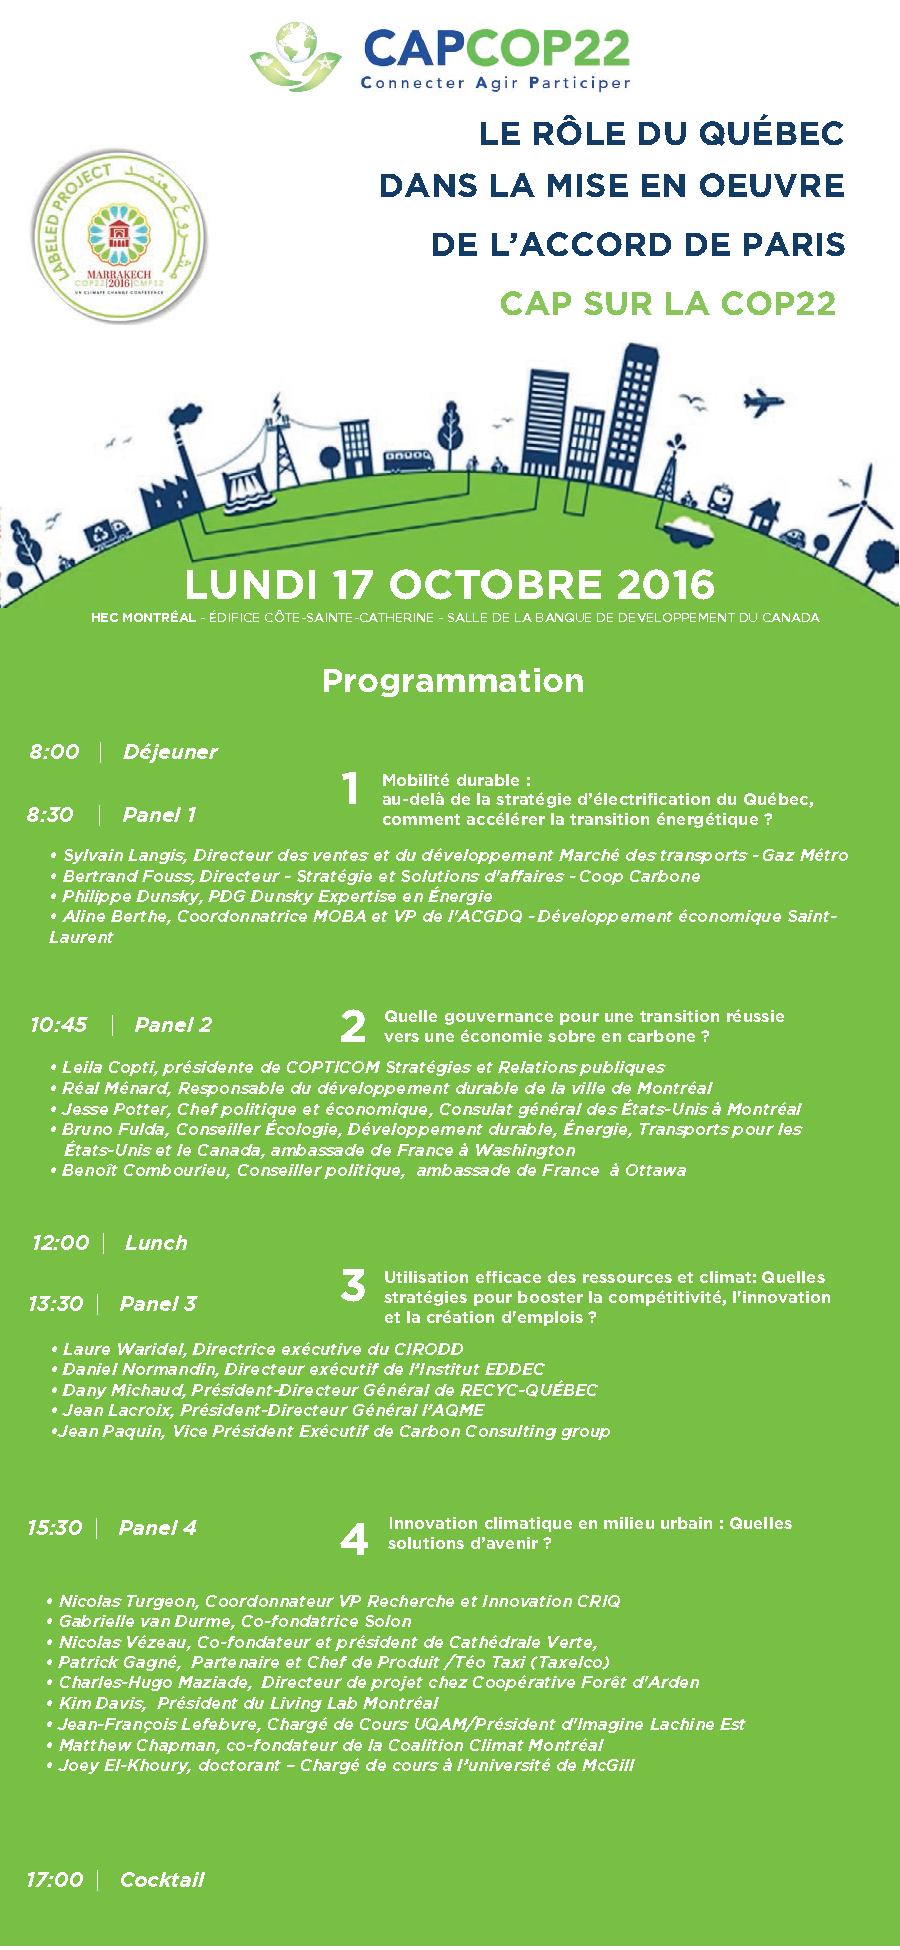 Agenda du Colloque